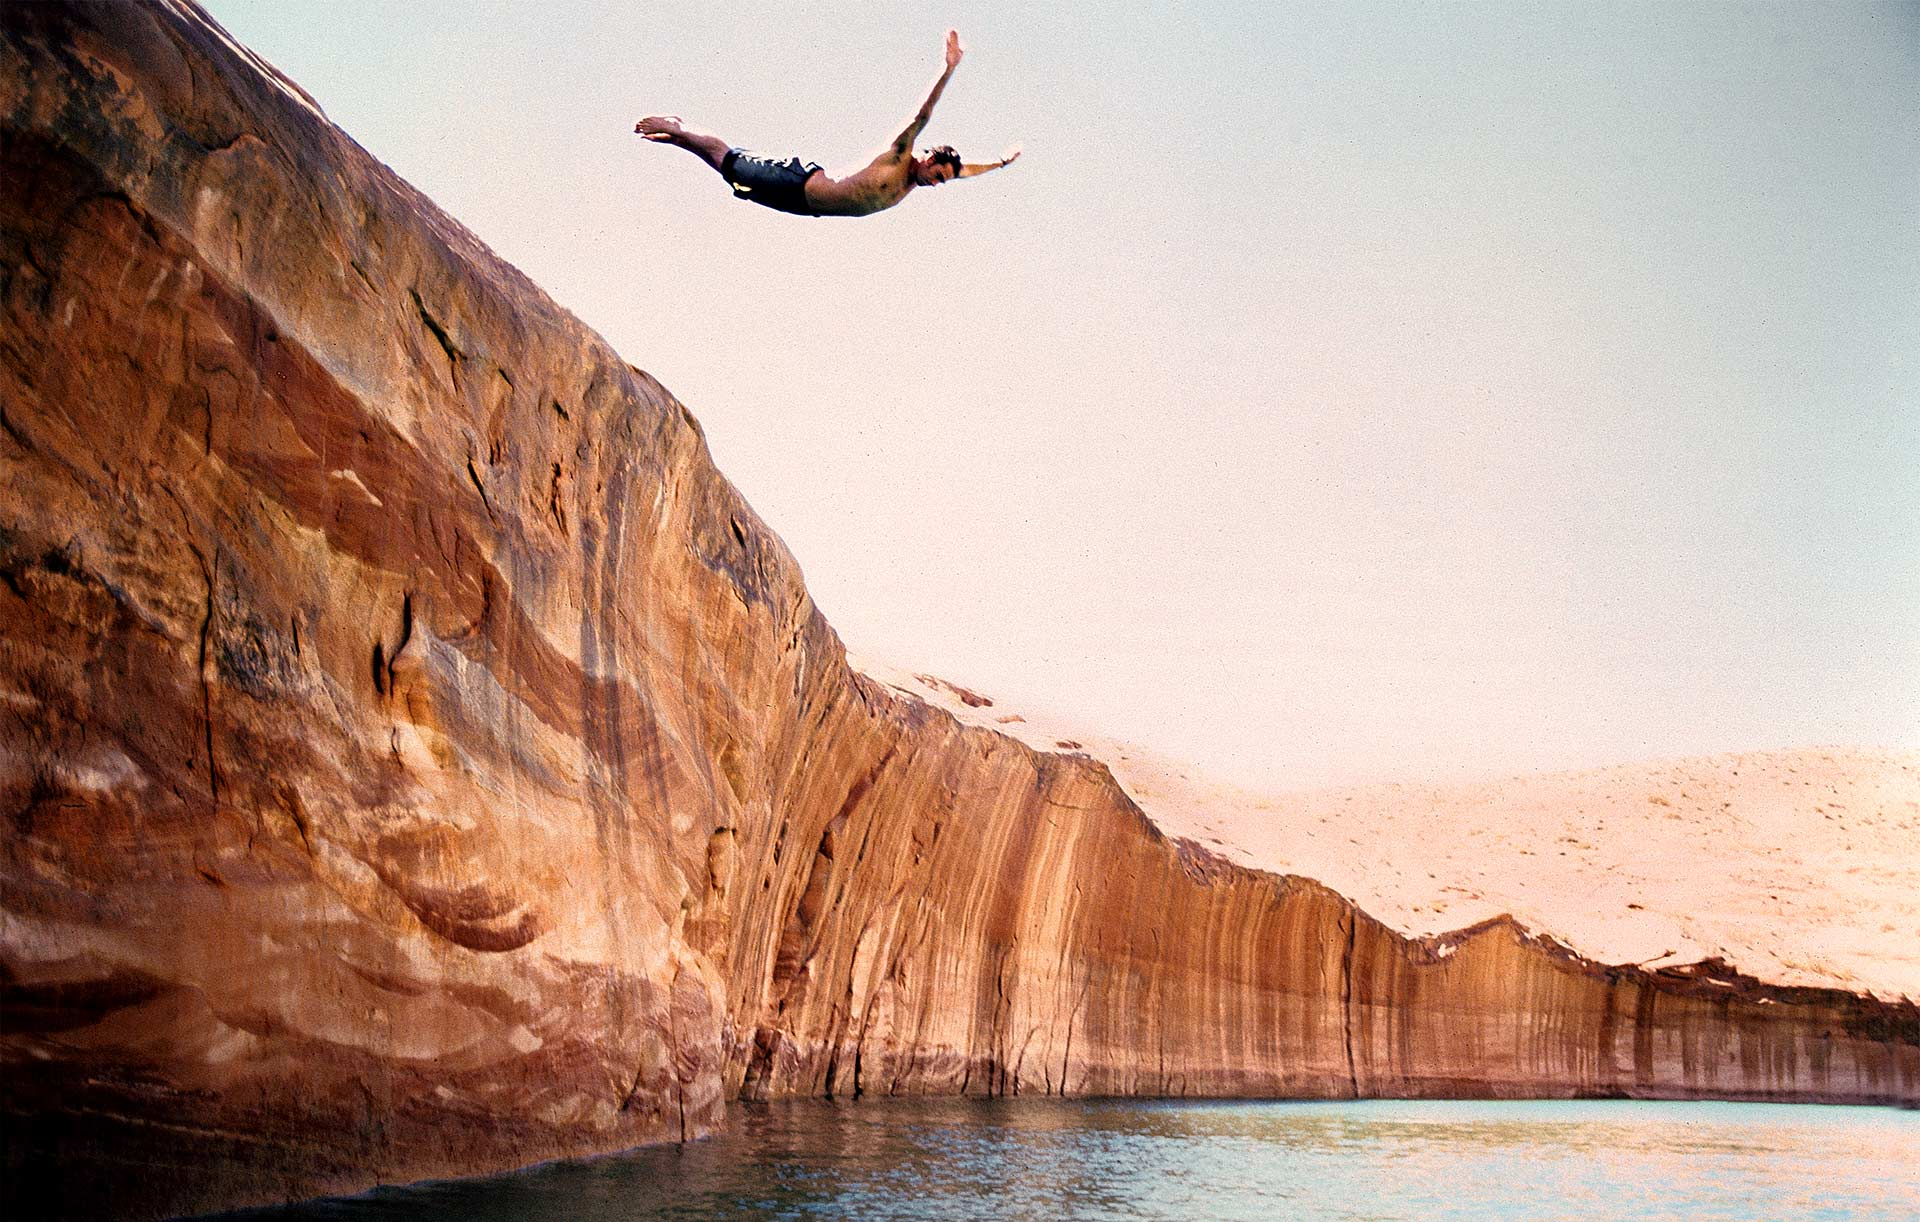 Eddie Bauer - Lake Powell/Grand Canyon